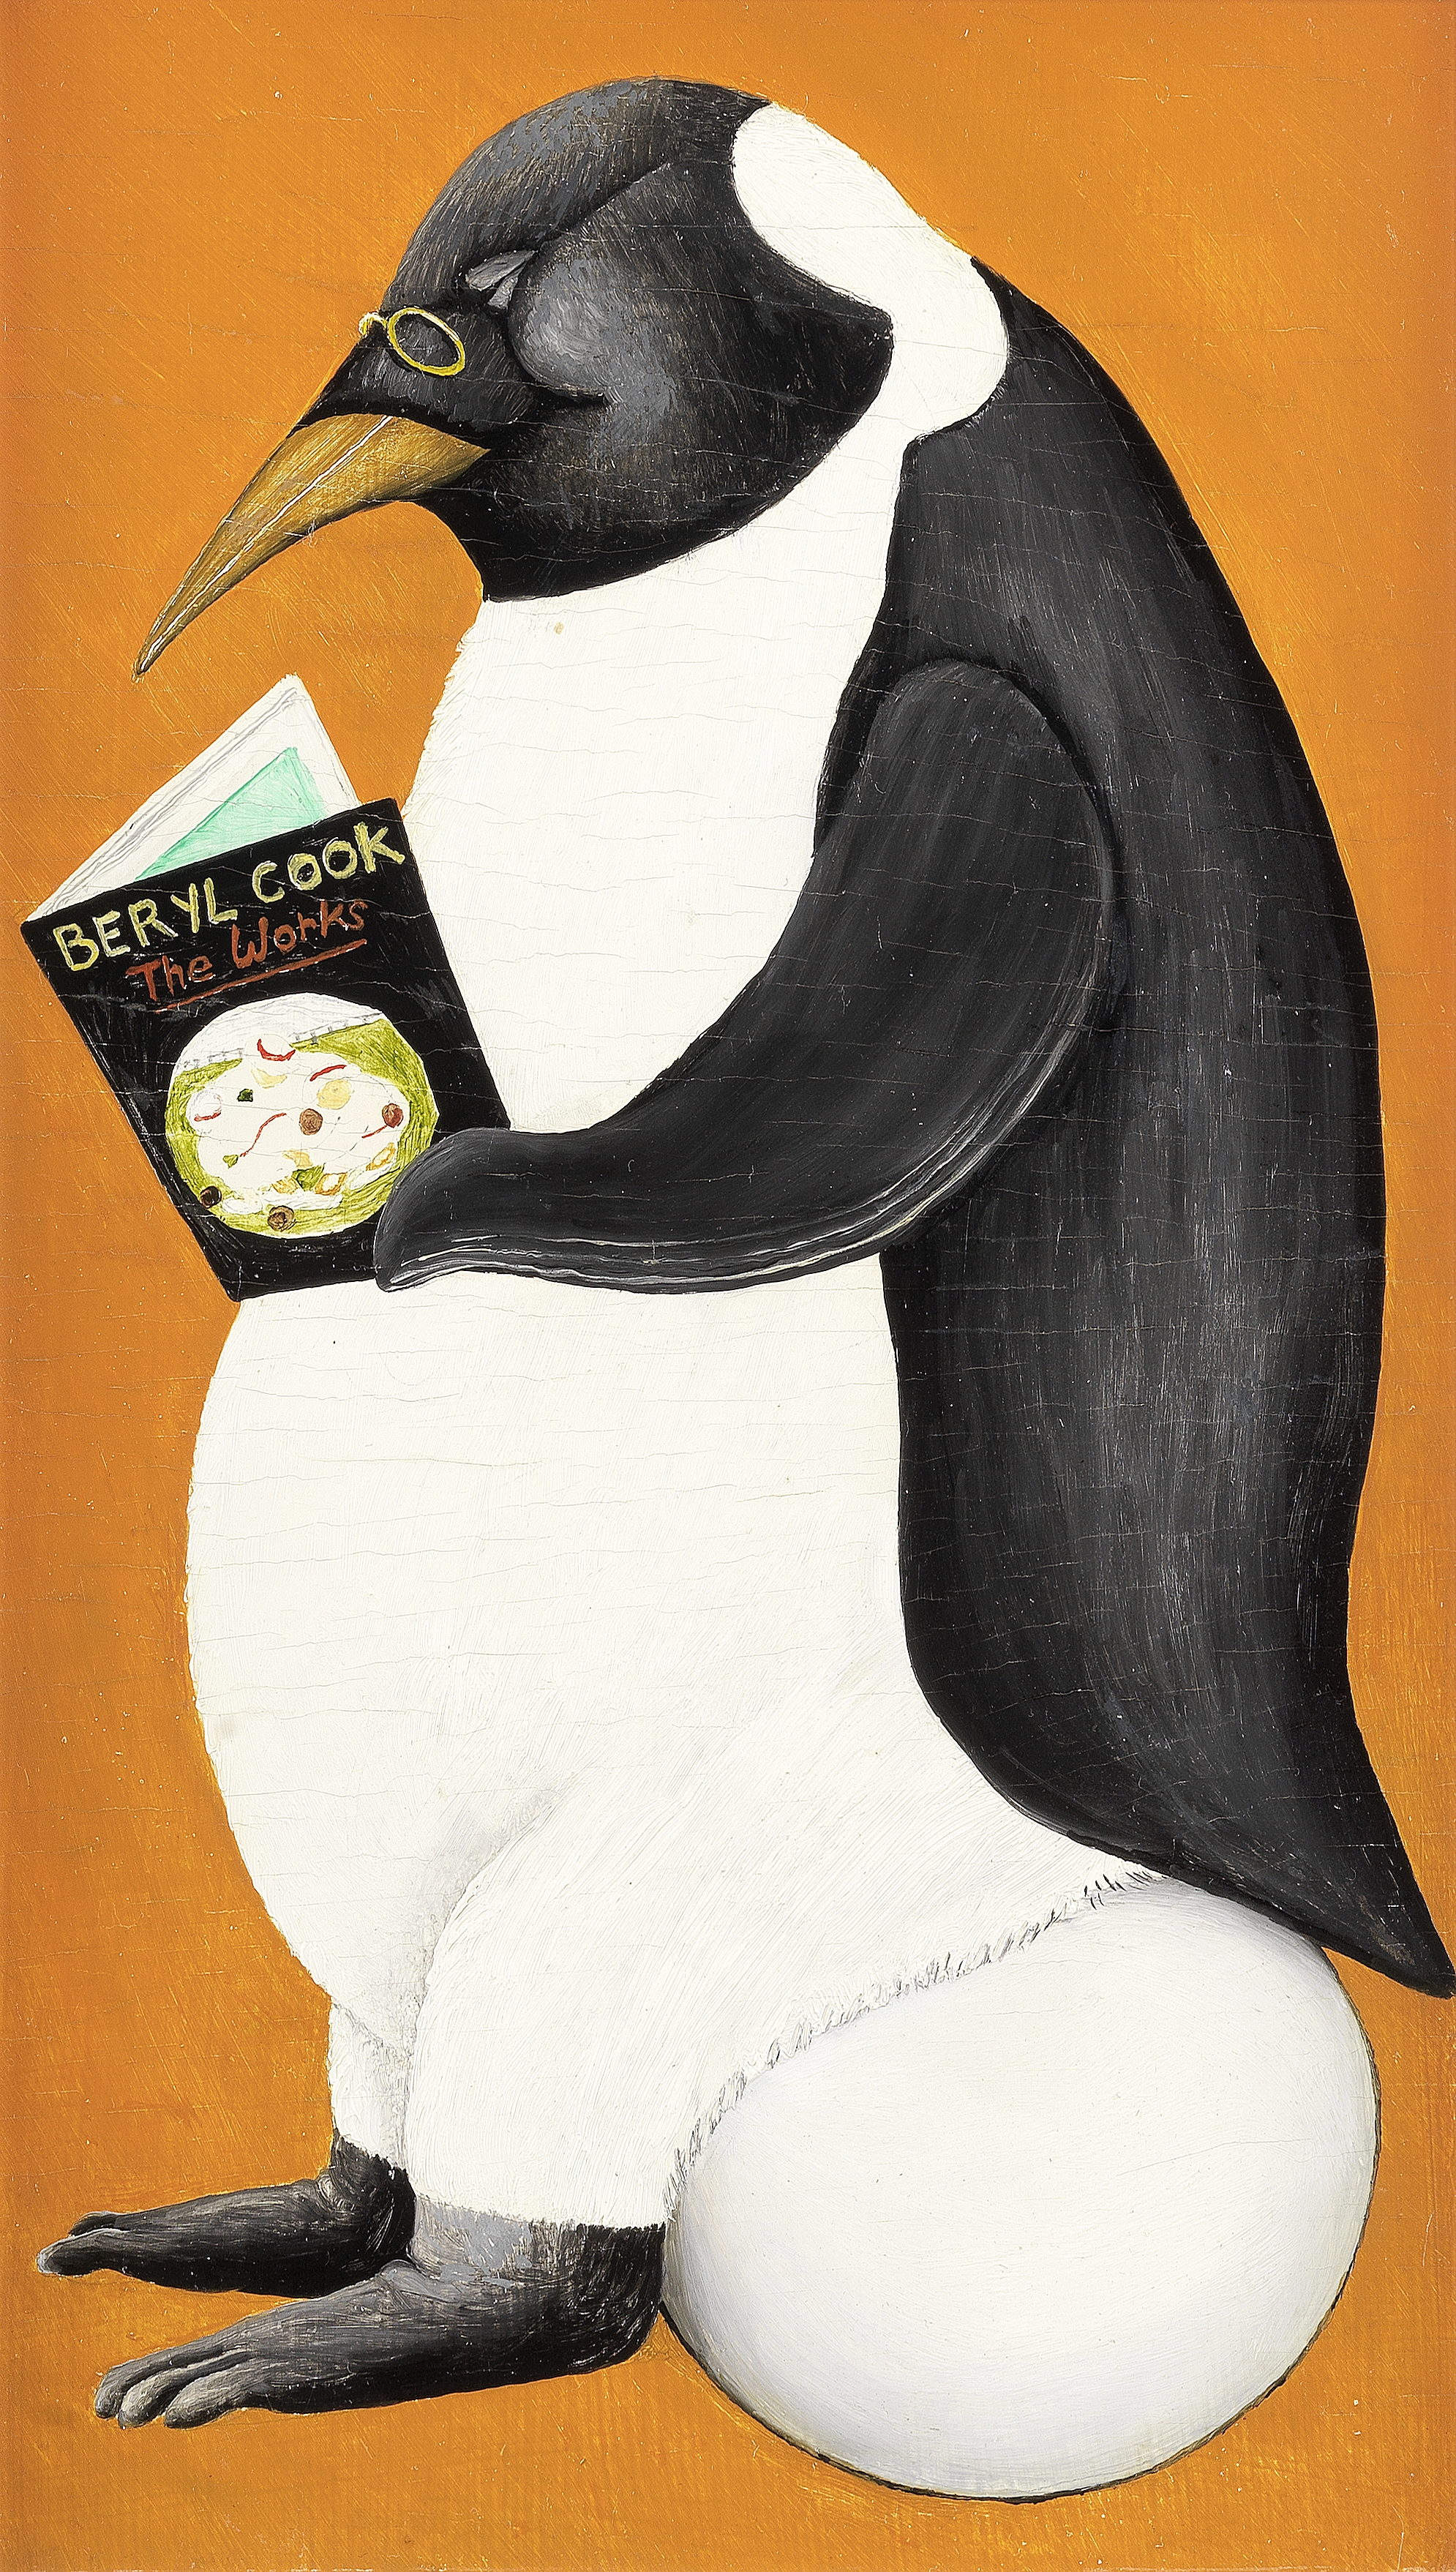 Beryl Cook O.B.E. (British, 1926-2008) Penguin Reading 33 x 20.3 cm. (13 x 8 in.) (Painted in 1985)